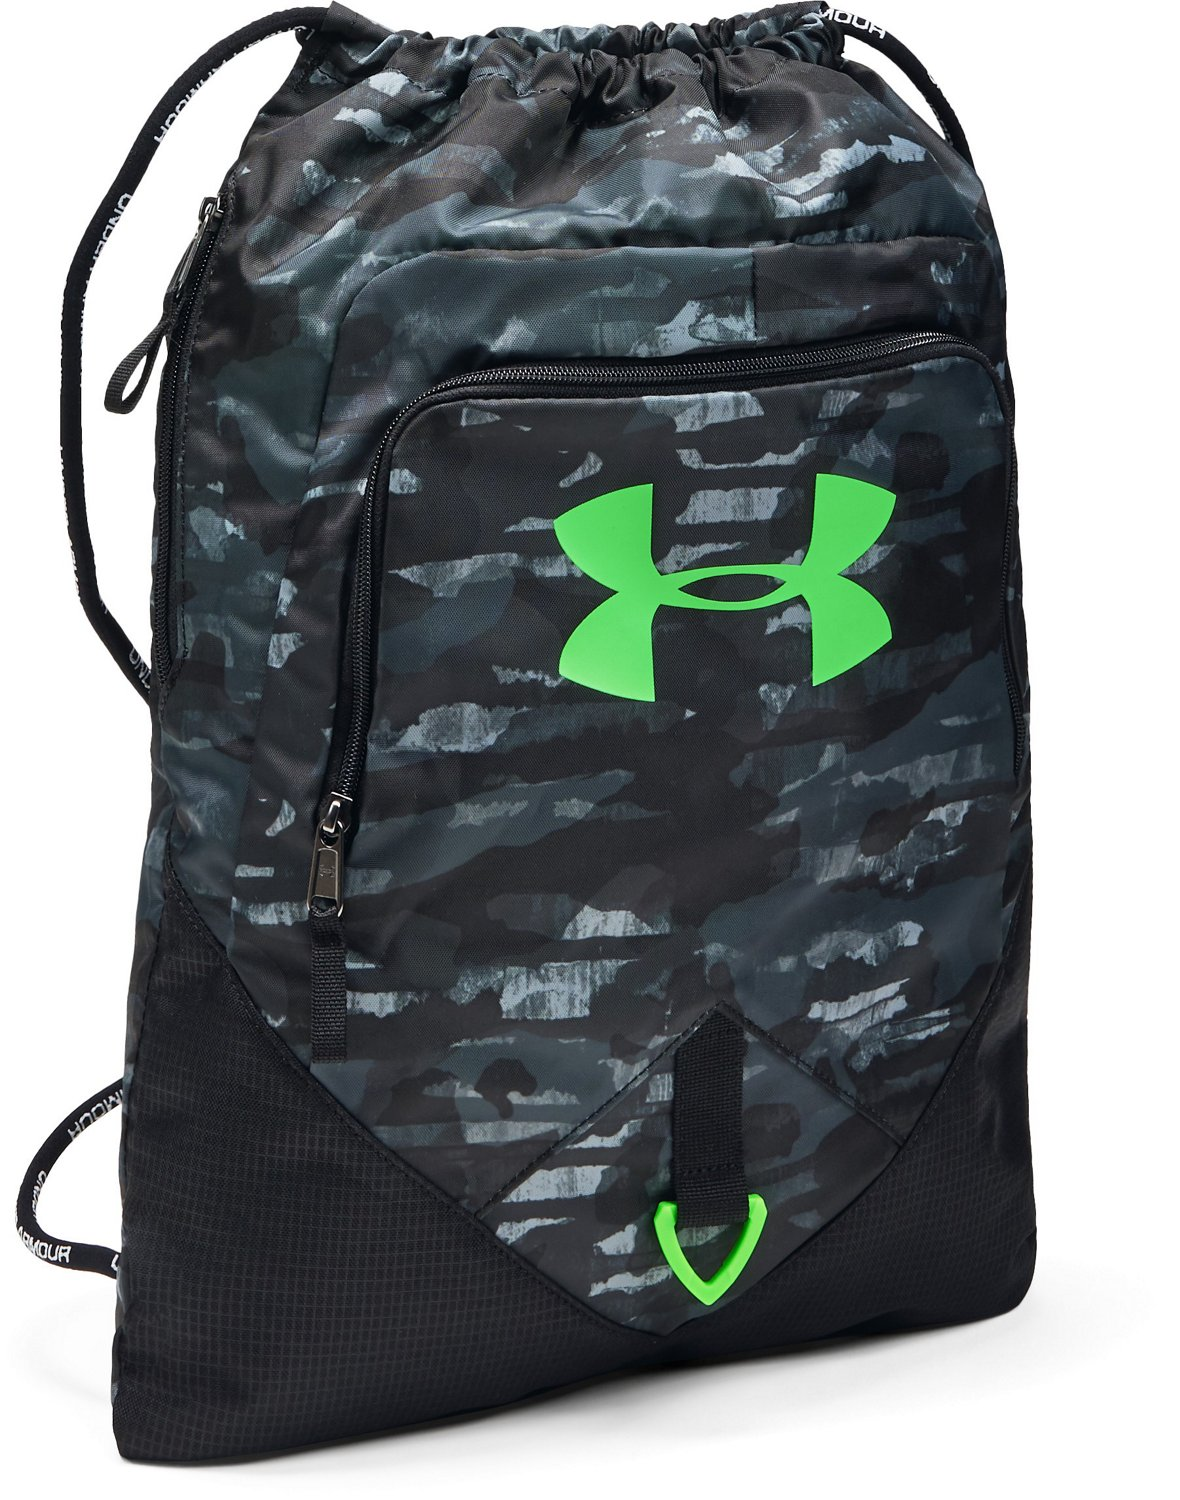 765897e97877 Under Armour Undeniable Sackpack